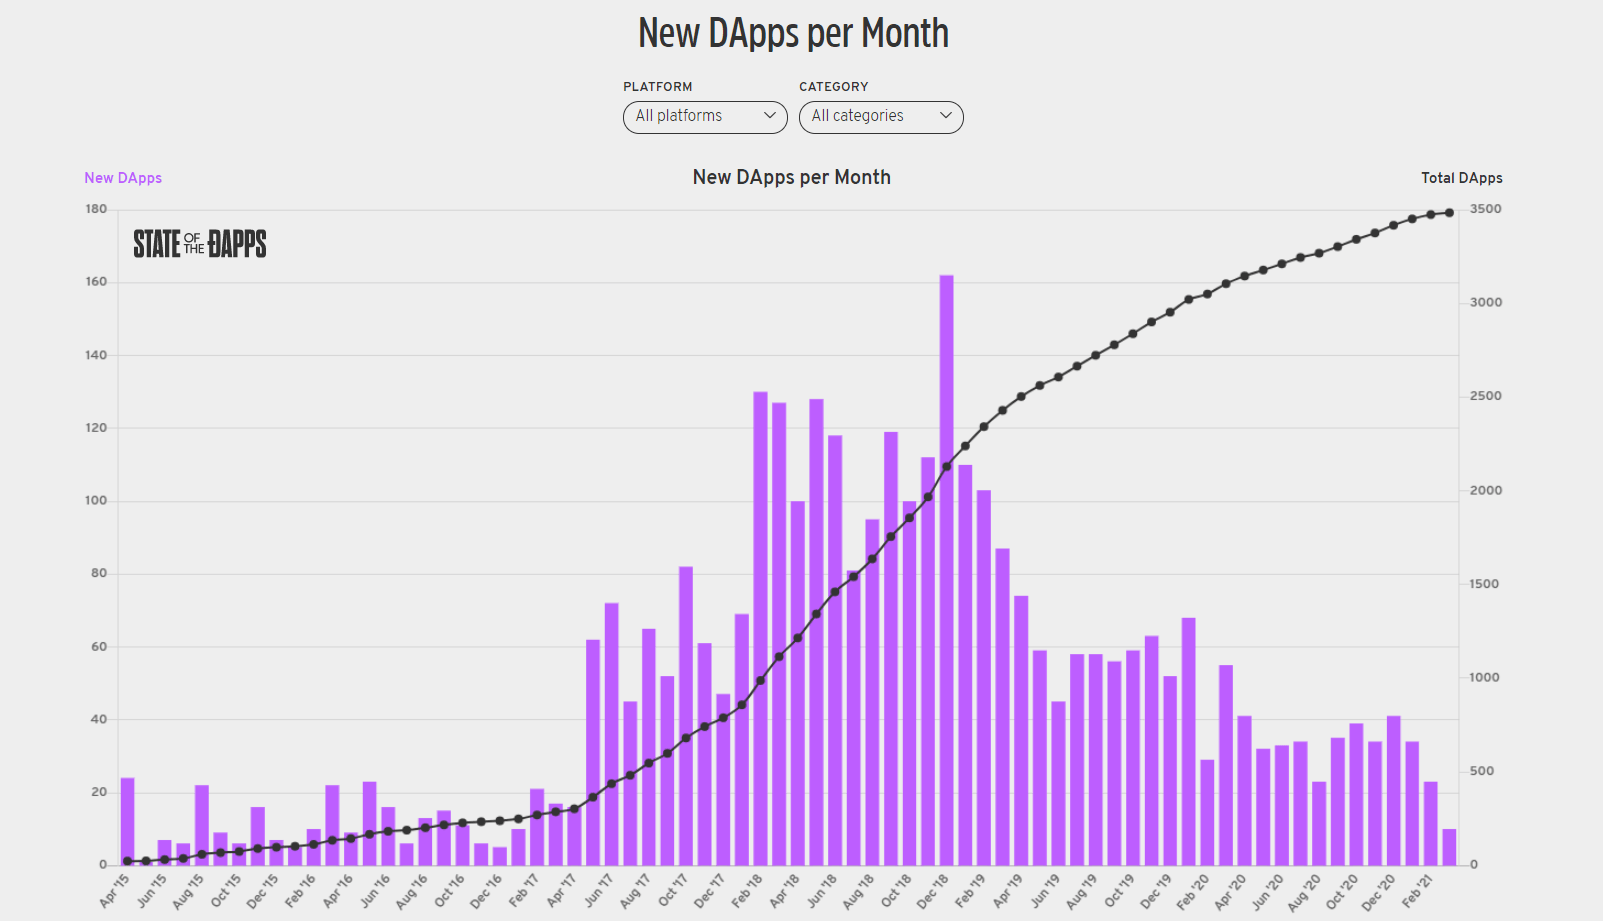 The total number of dapps has grown from 20 in April 2015 to 3500 in March 2021, with peak activity occurring in 2018